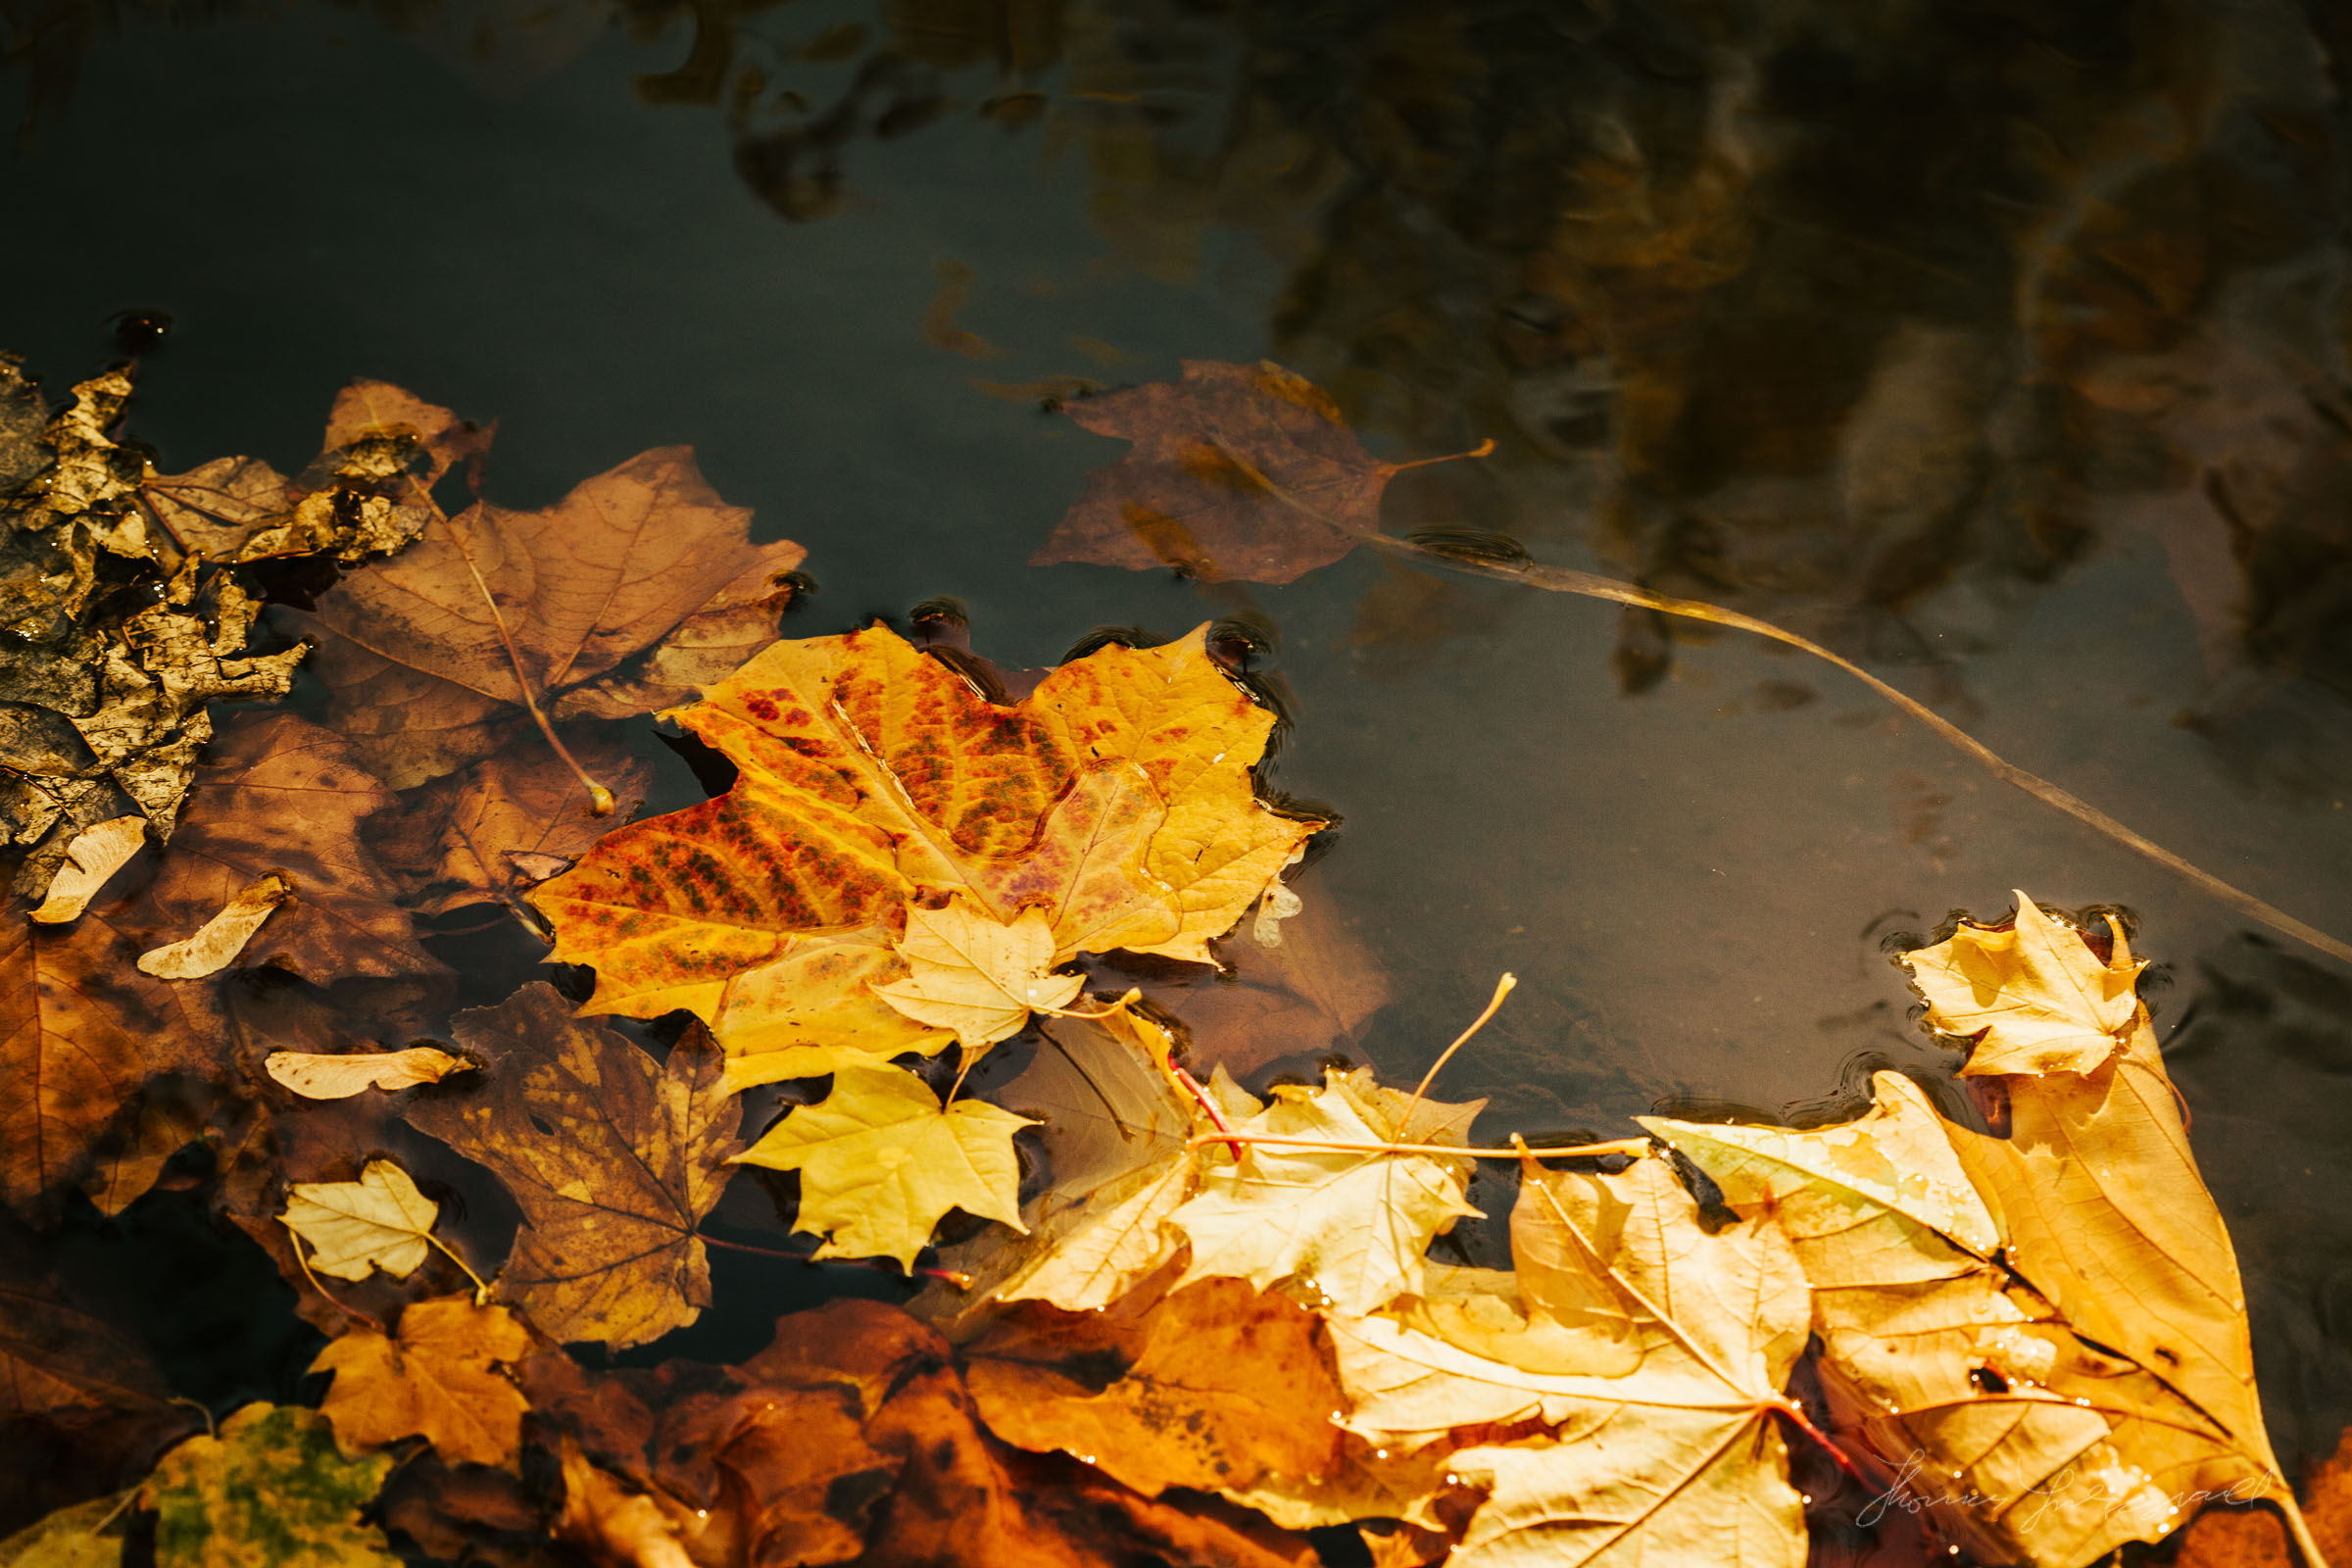 Autumn leaves floating on the surface of the water